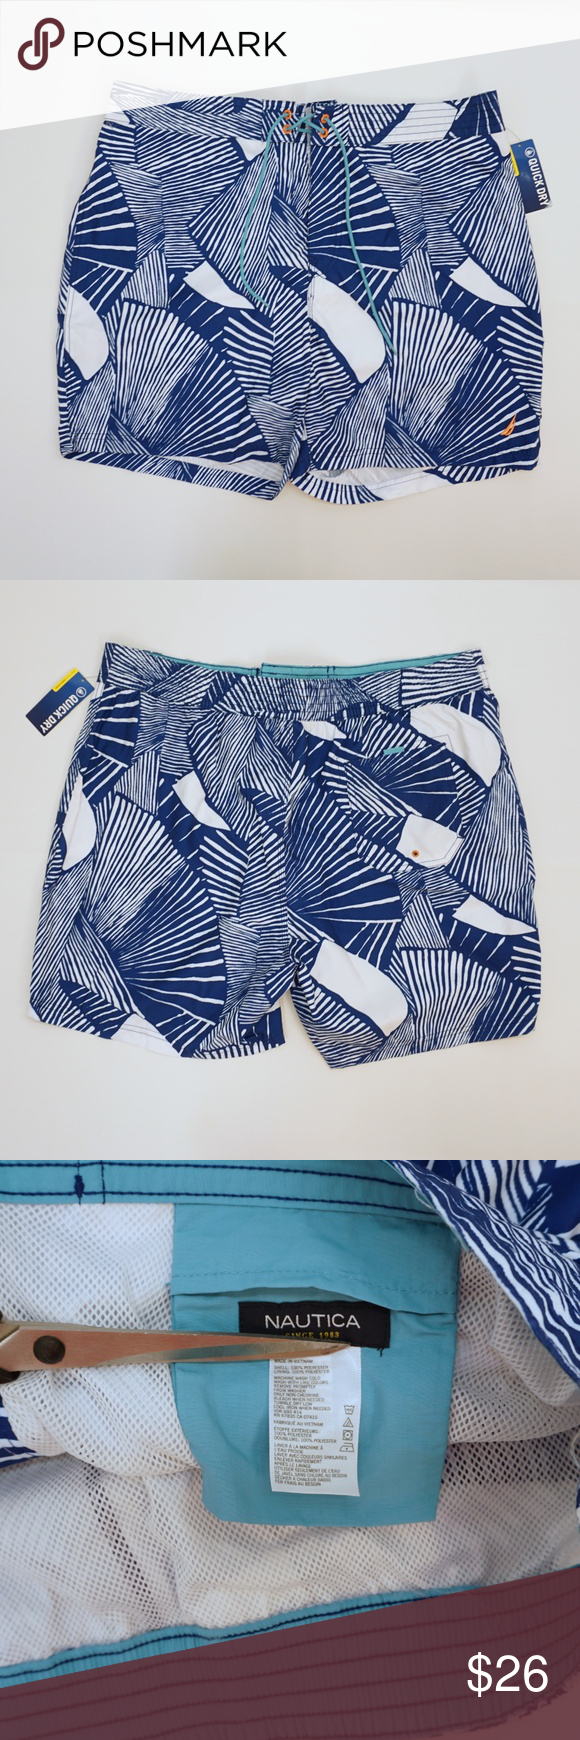 b994731211 Nautica Swim Trunks Shorts with Lining Blue White Nautica Mens Faux  Drawstring (hook and loop fastener) Fly Swim Trunks Shorts with Brief Liner  SIZE: XXL ...